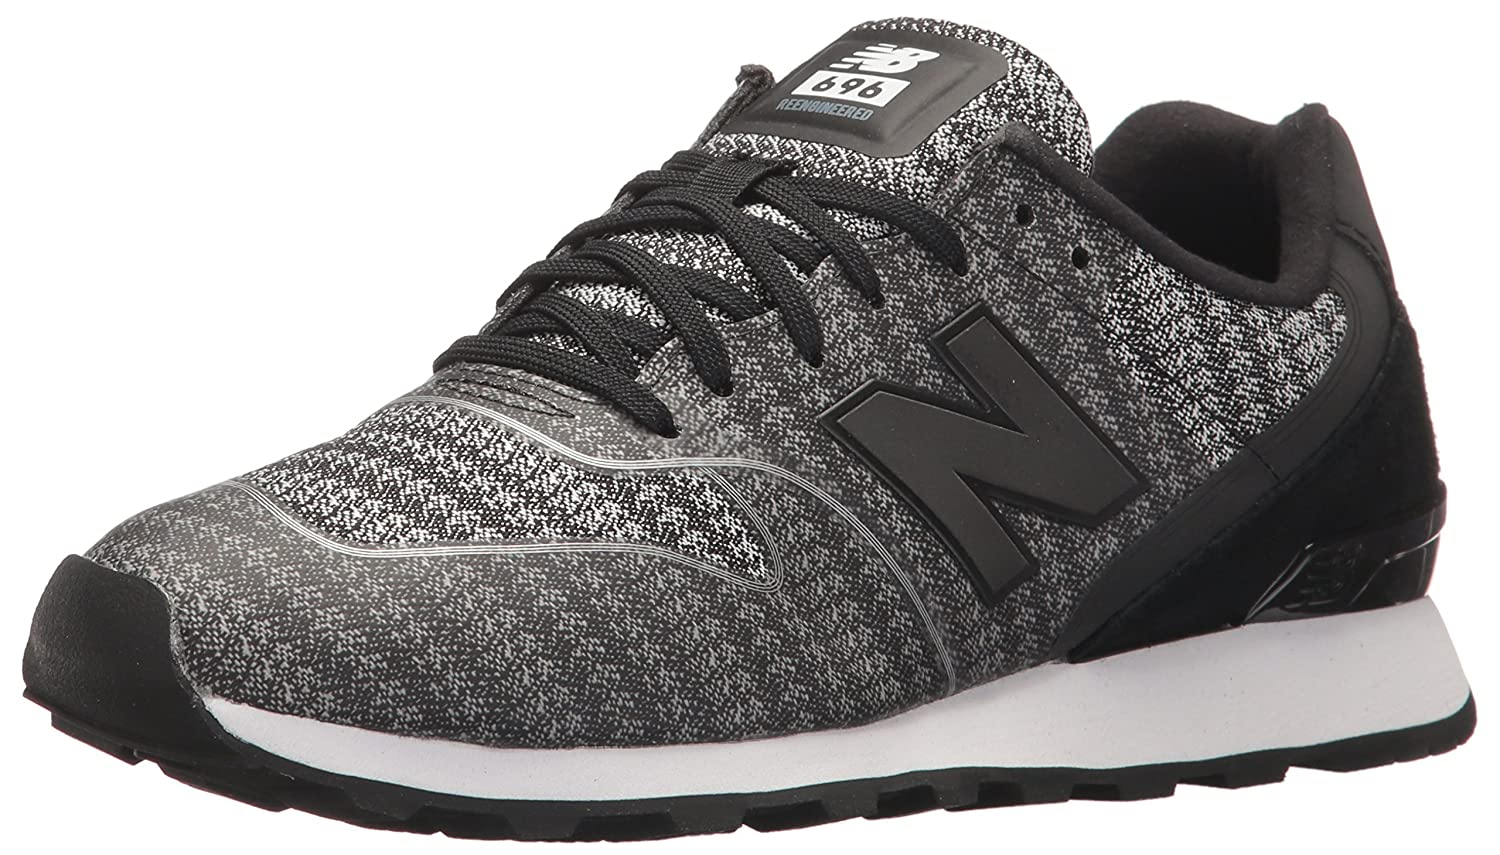 New Balance Women's 696 v1 Sneaker B01NA7CB9F 11.5 B(M) US|Black/Cyclone